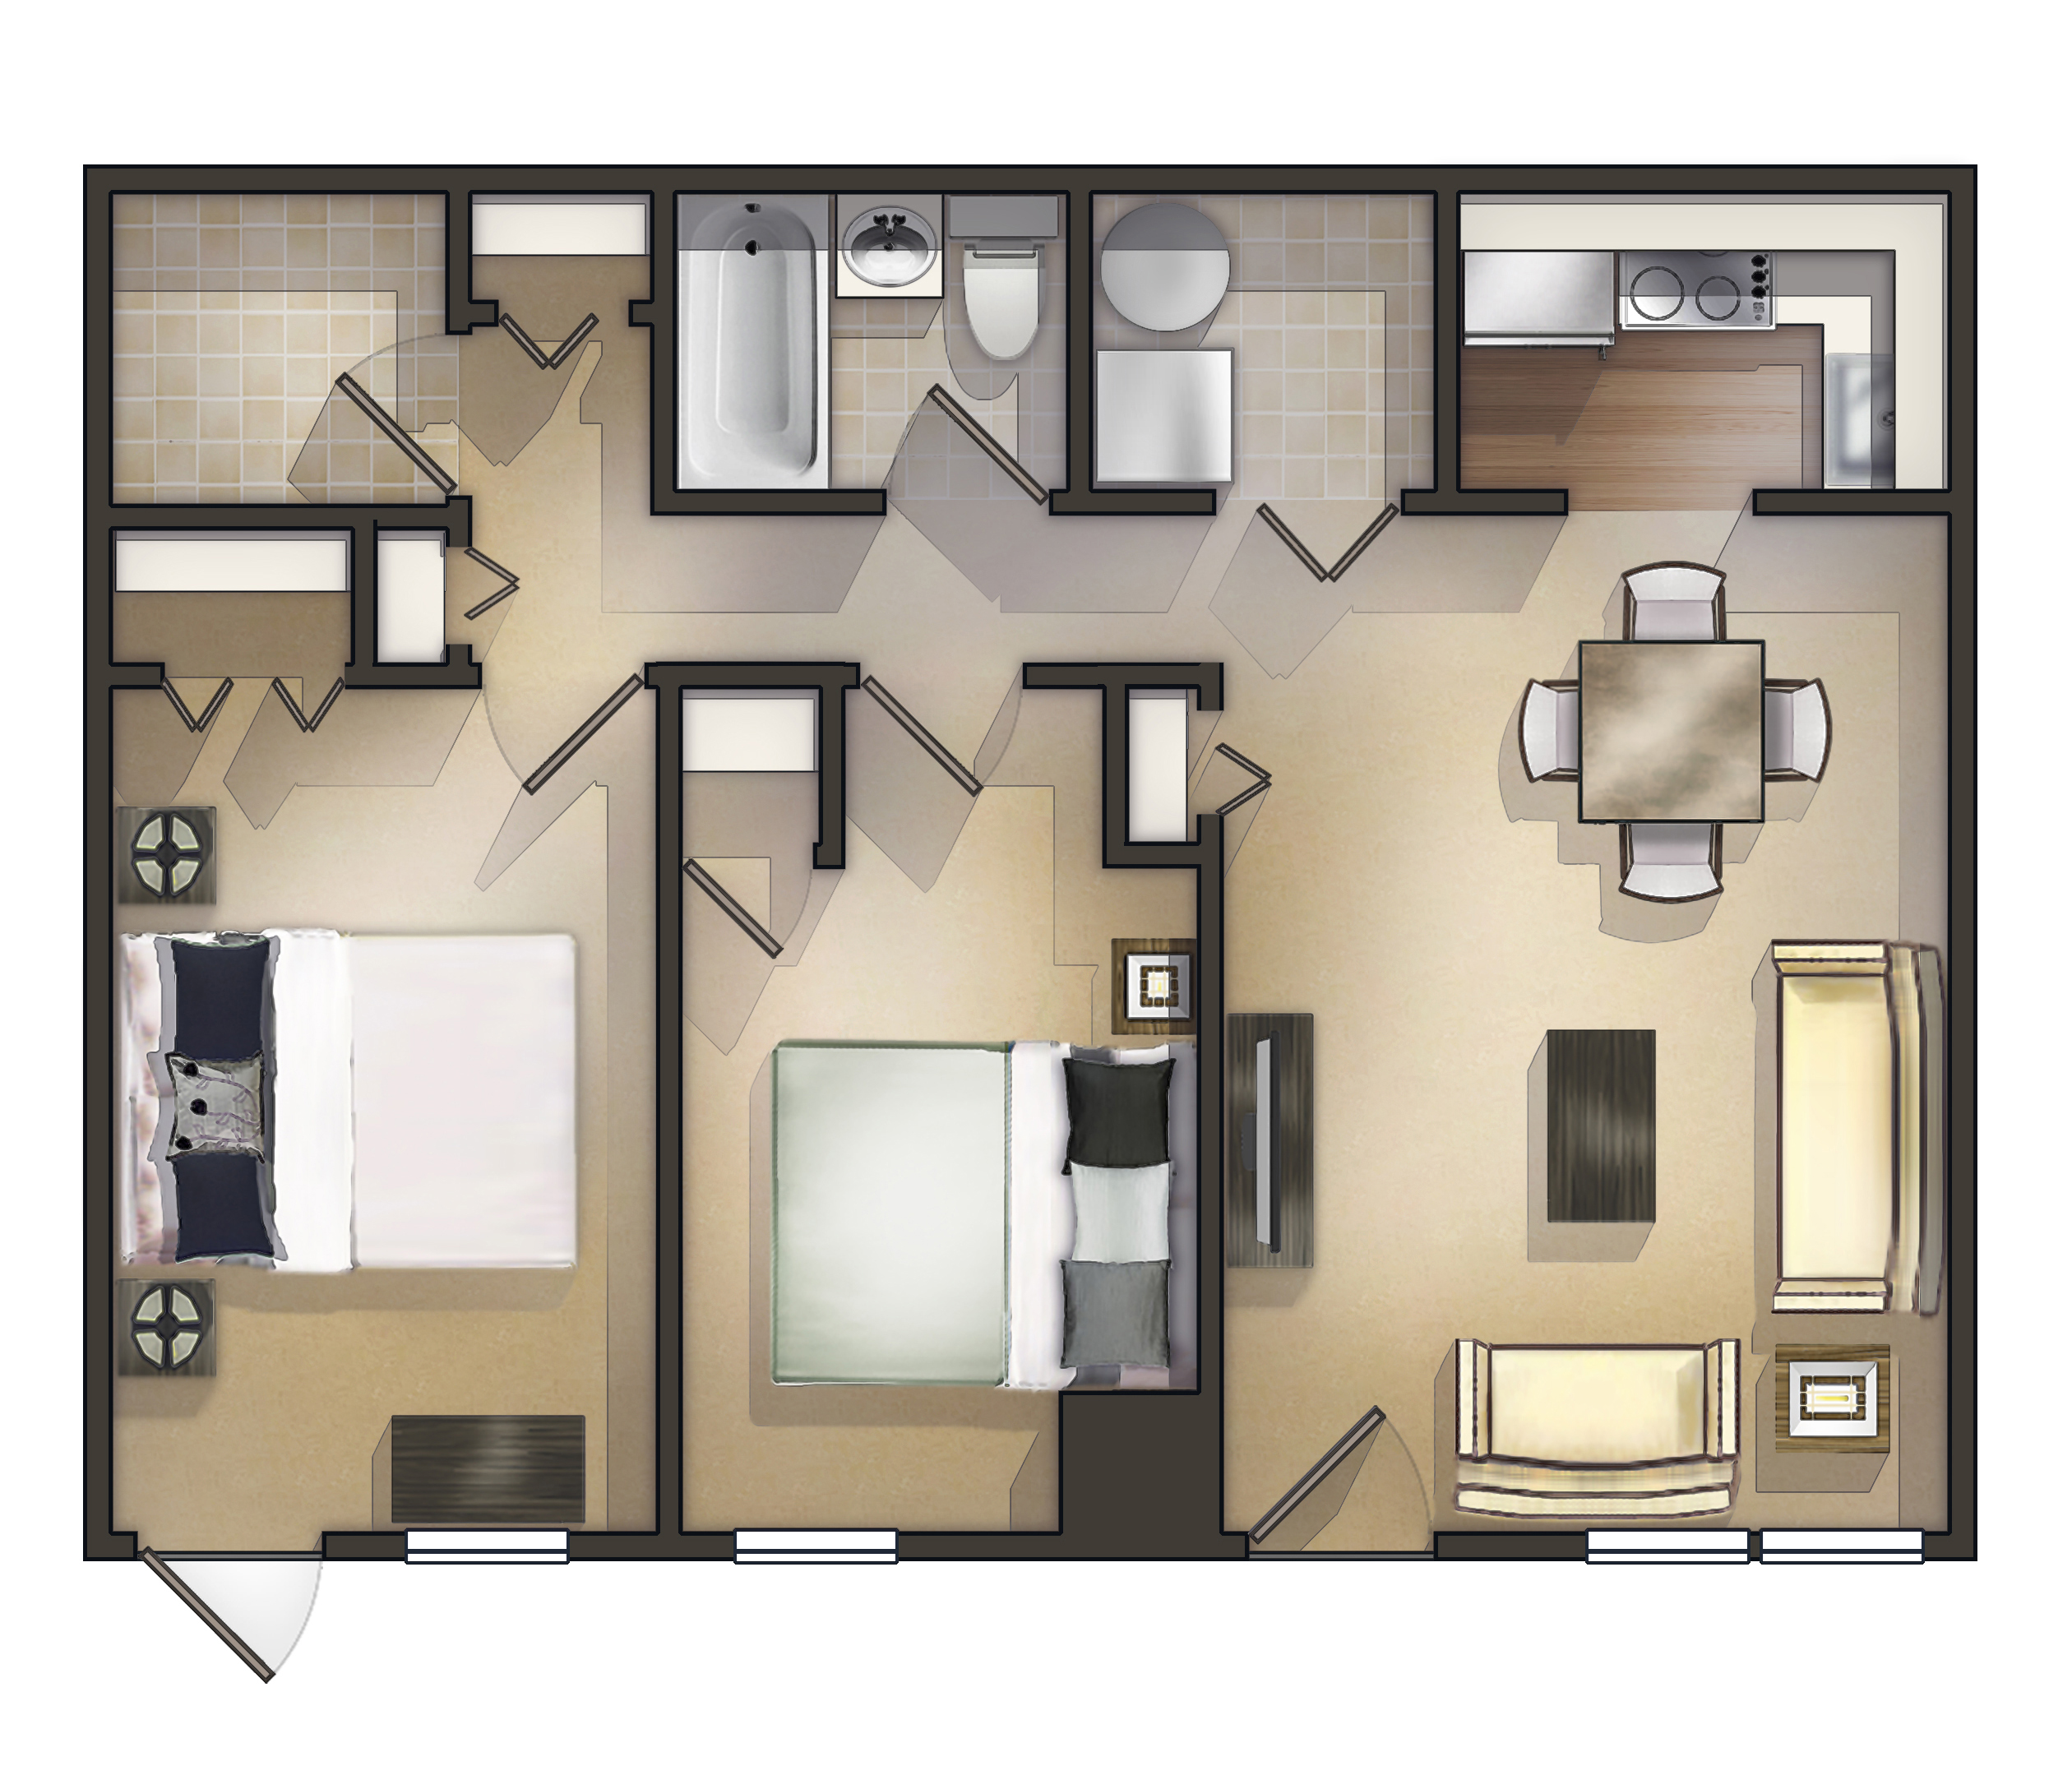 2 Bedroom Garden Unit Floorplan